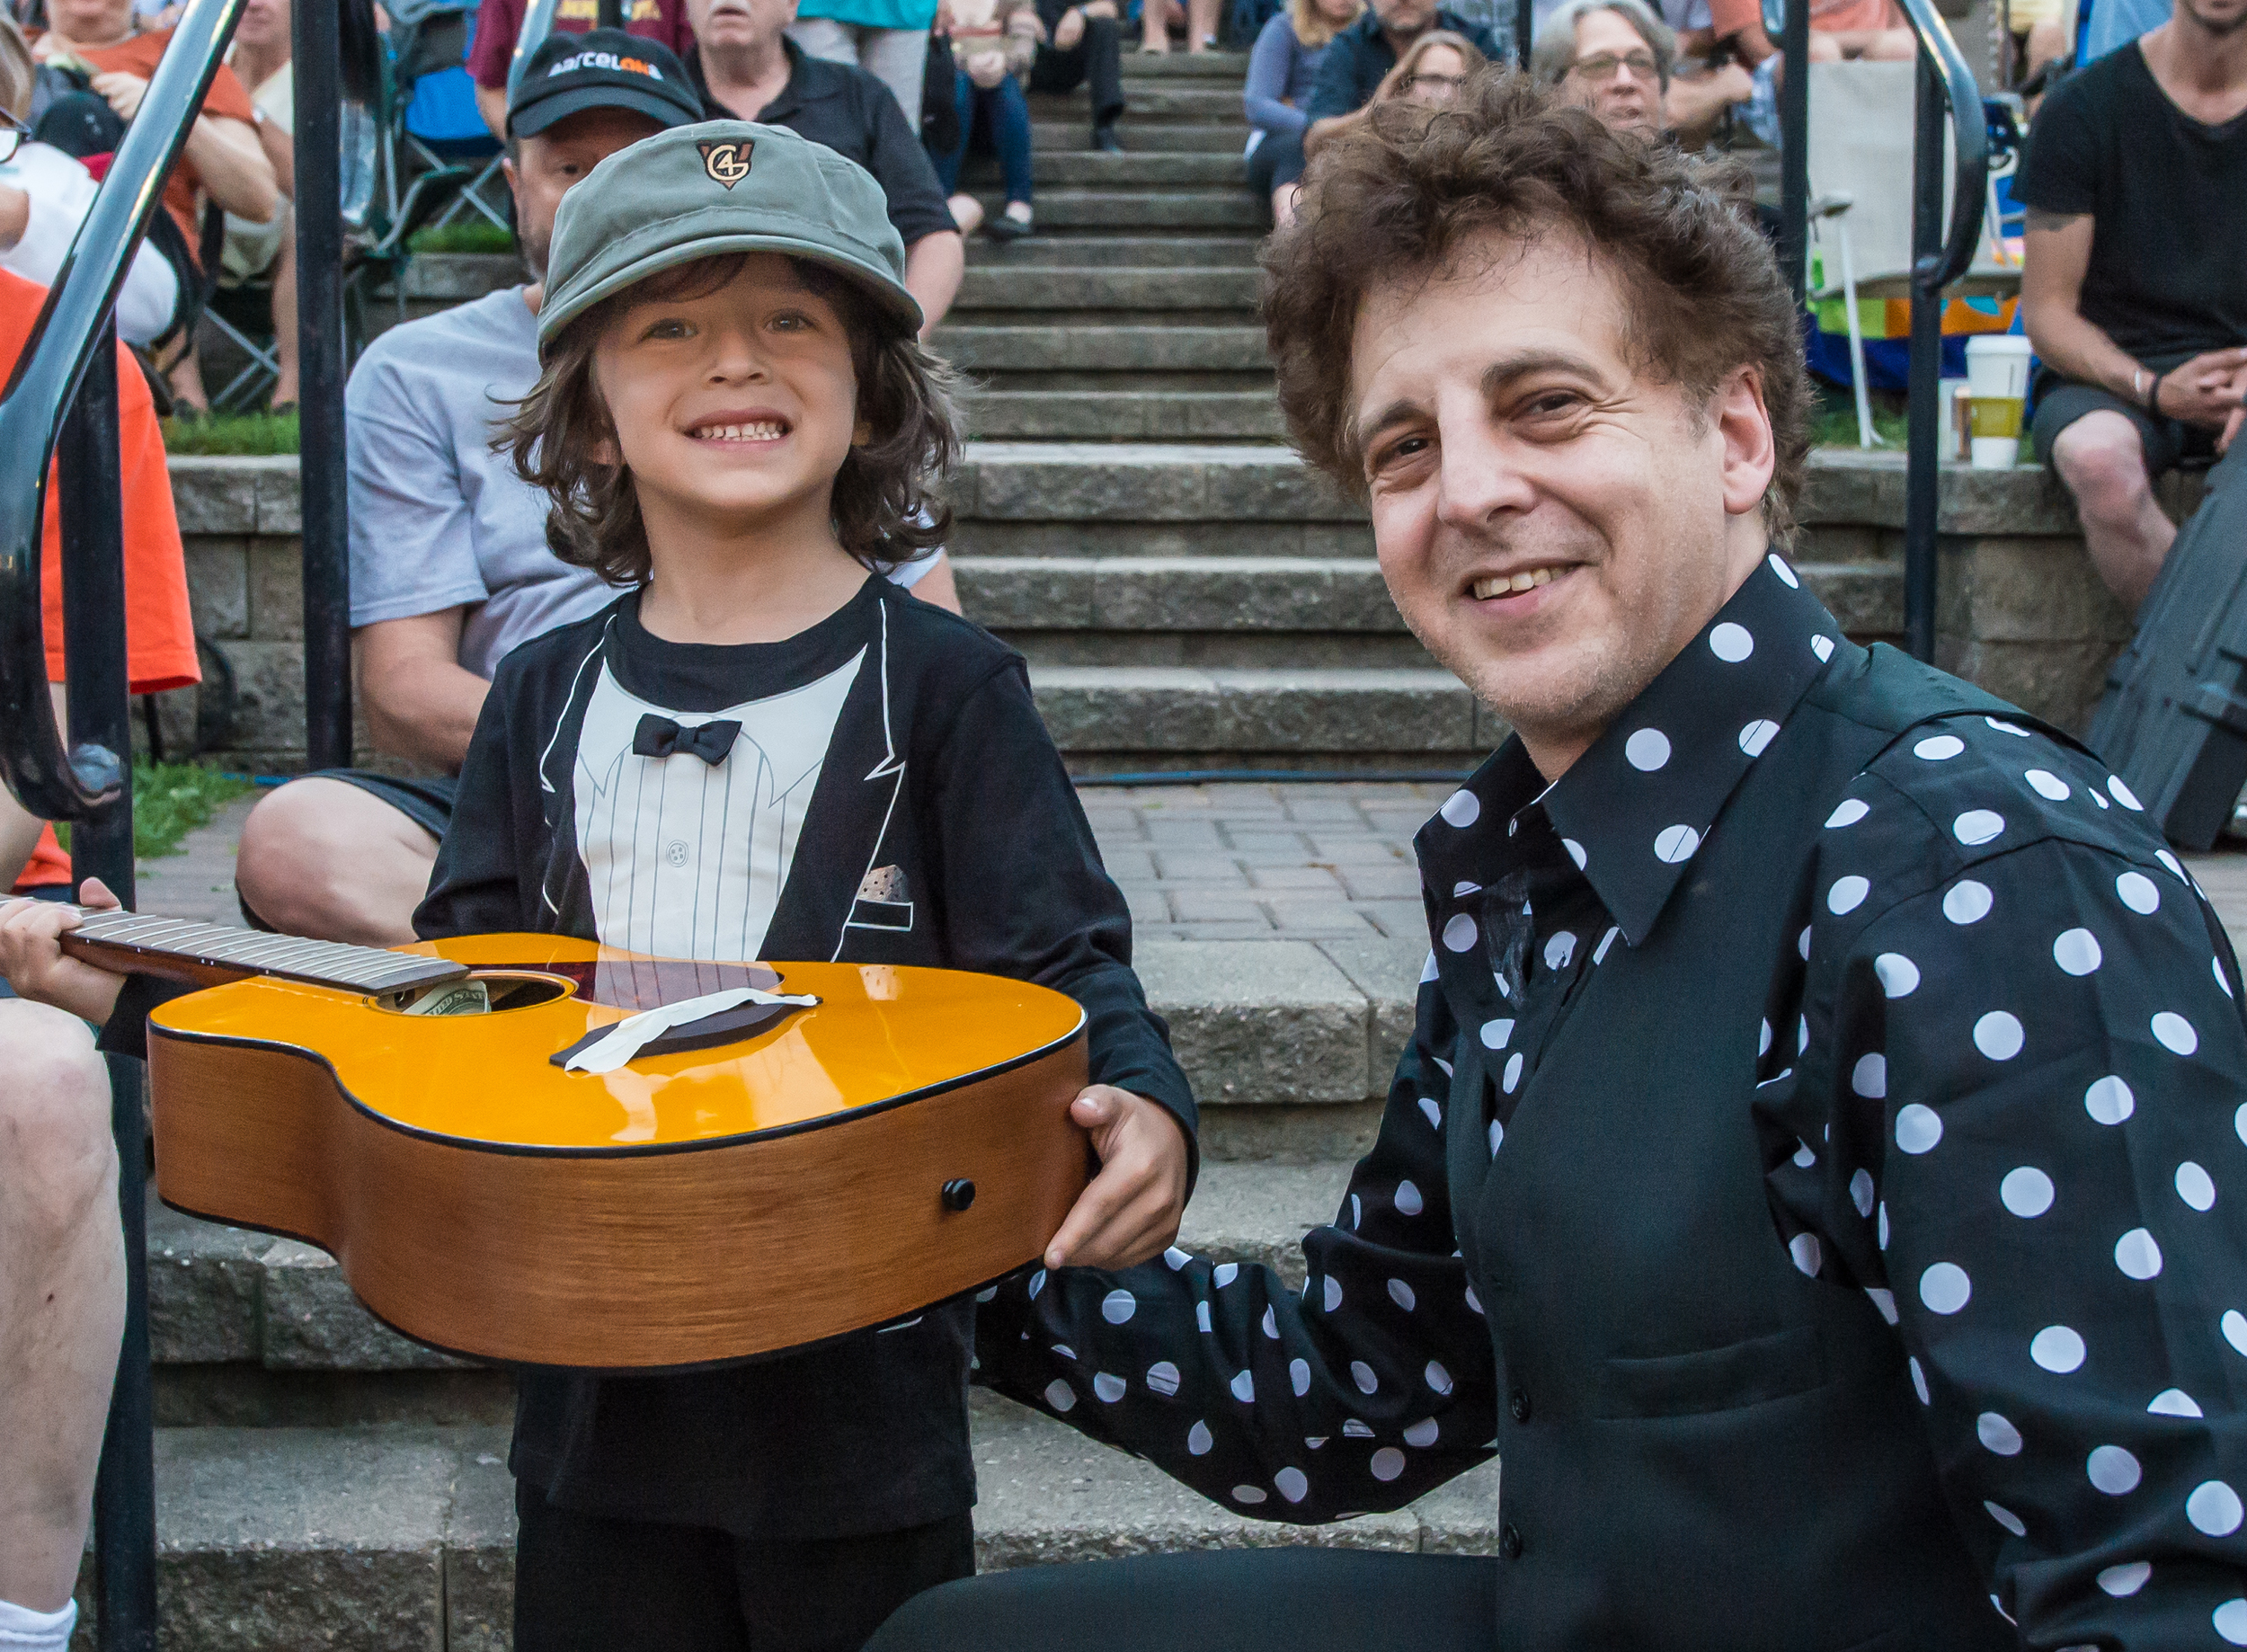 Abe Percansky-Segal and Magic Marc / Salute to the Music of Bob Dylan / The Veterans' Memorial Wolfe Park Amphitheater / St. Louis Park, Minnesota / August 9th, 2014 / Photo by Don Olson